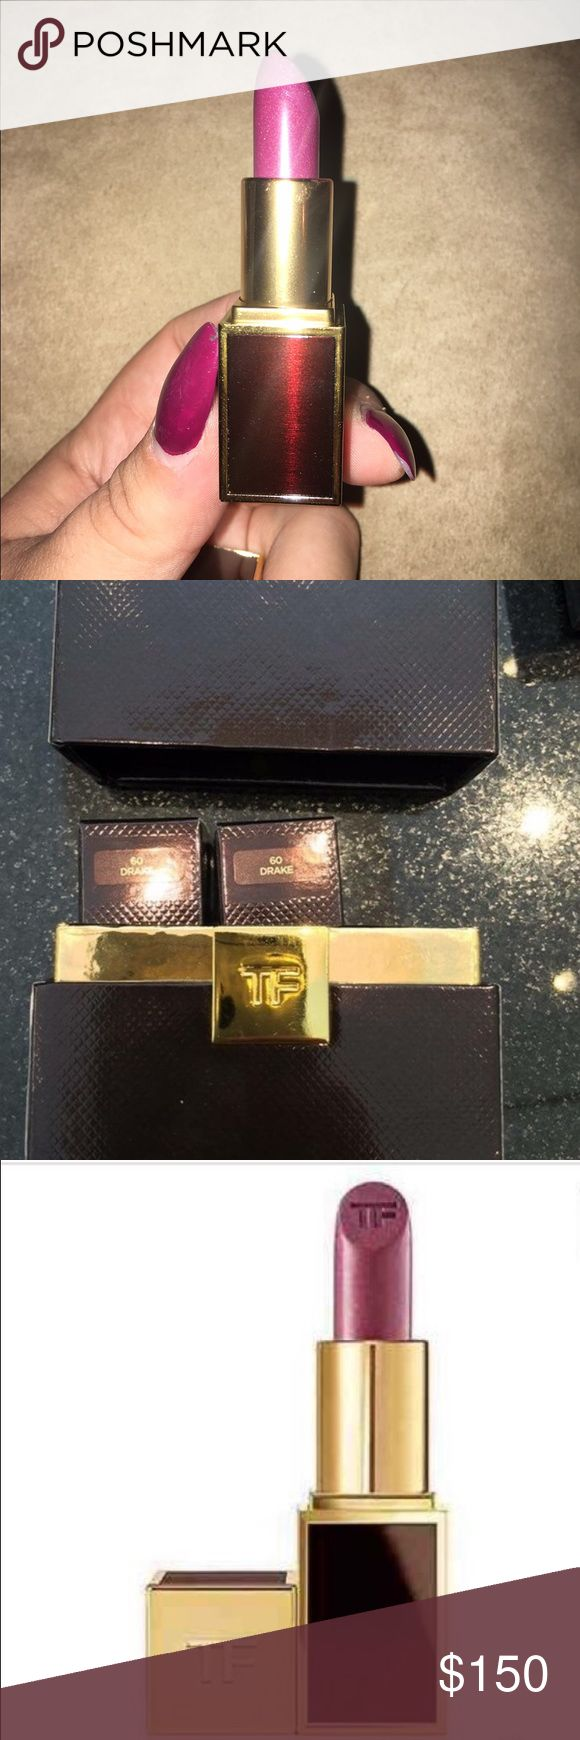 1000 Ideas About Tom Ford Store On Pinterest Tom Ford Interior